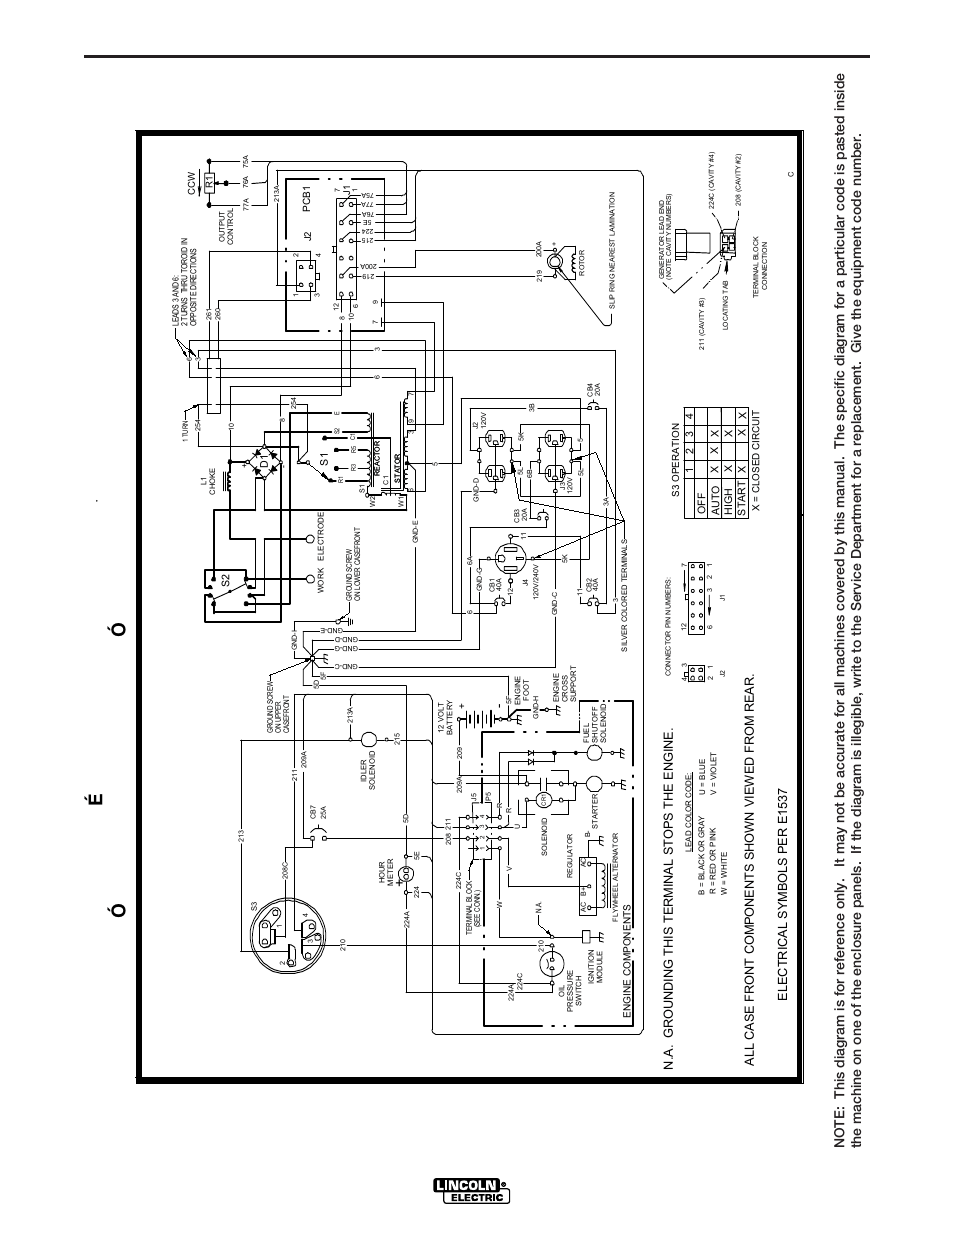 Vacuum Diagram For 1988 Isuzu Pickup Free Download Wiring Diagram